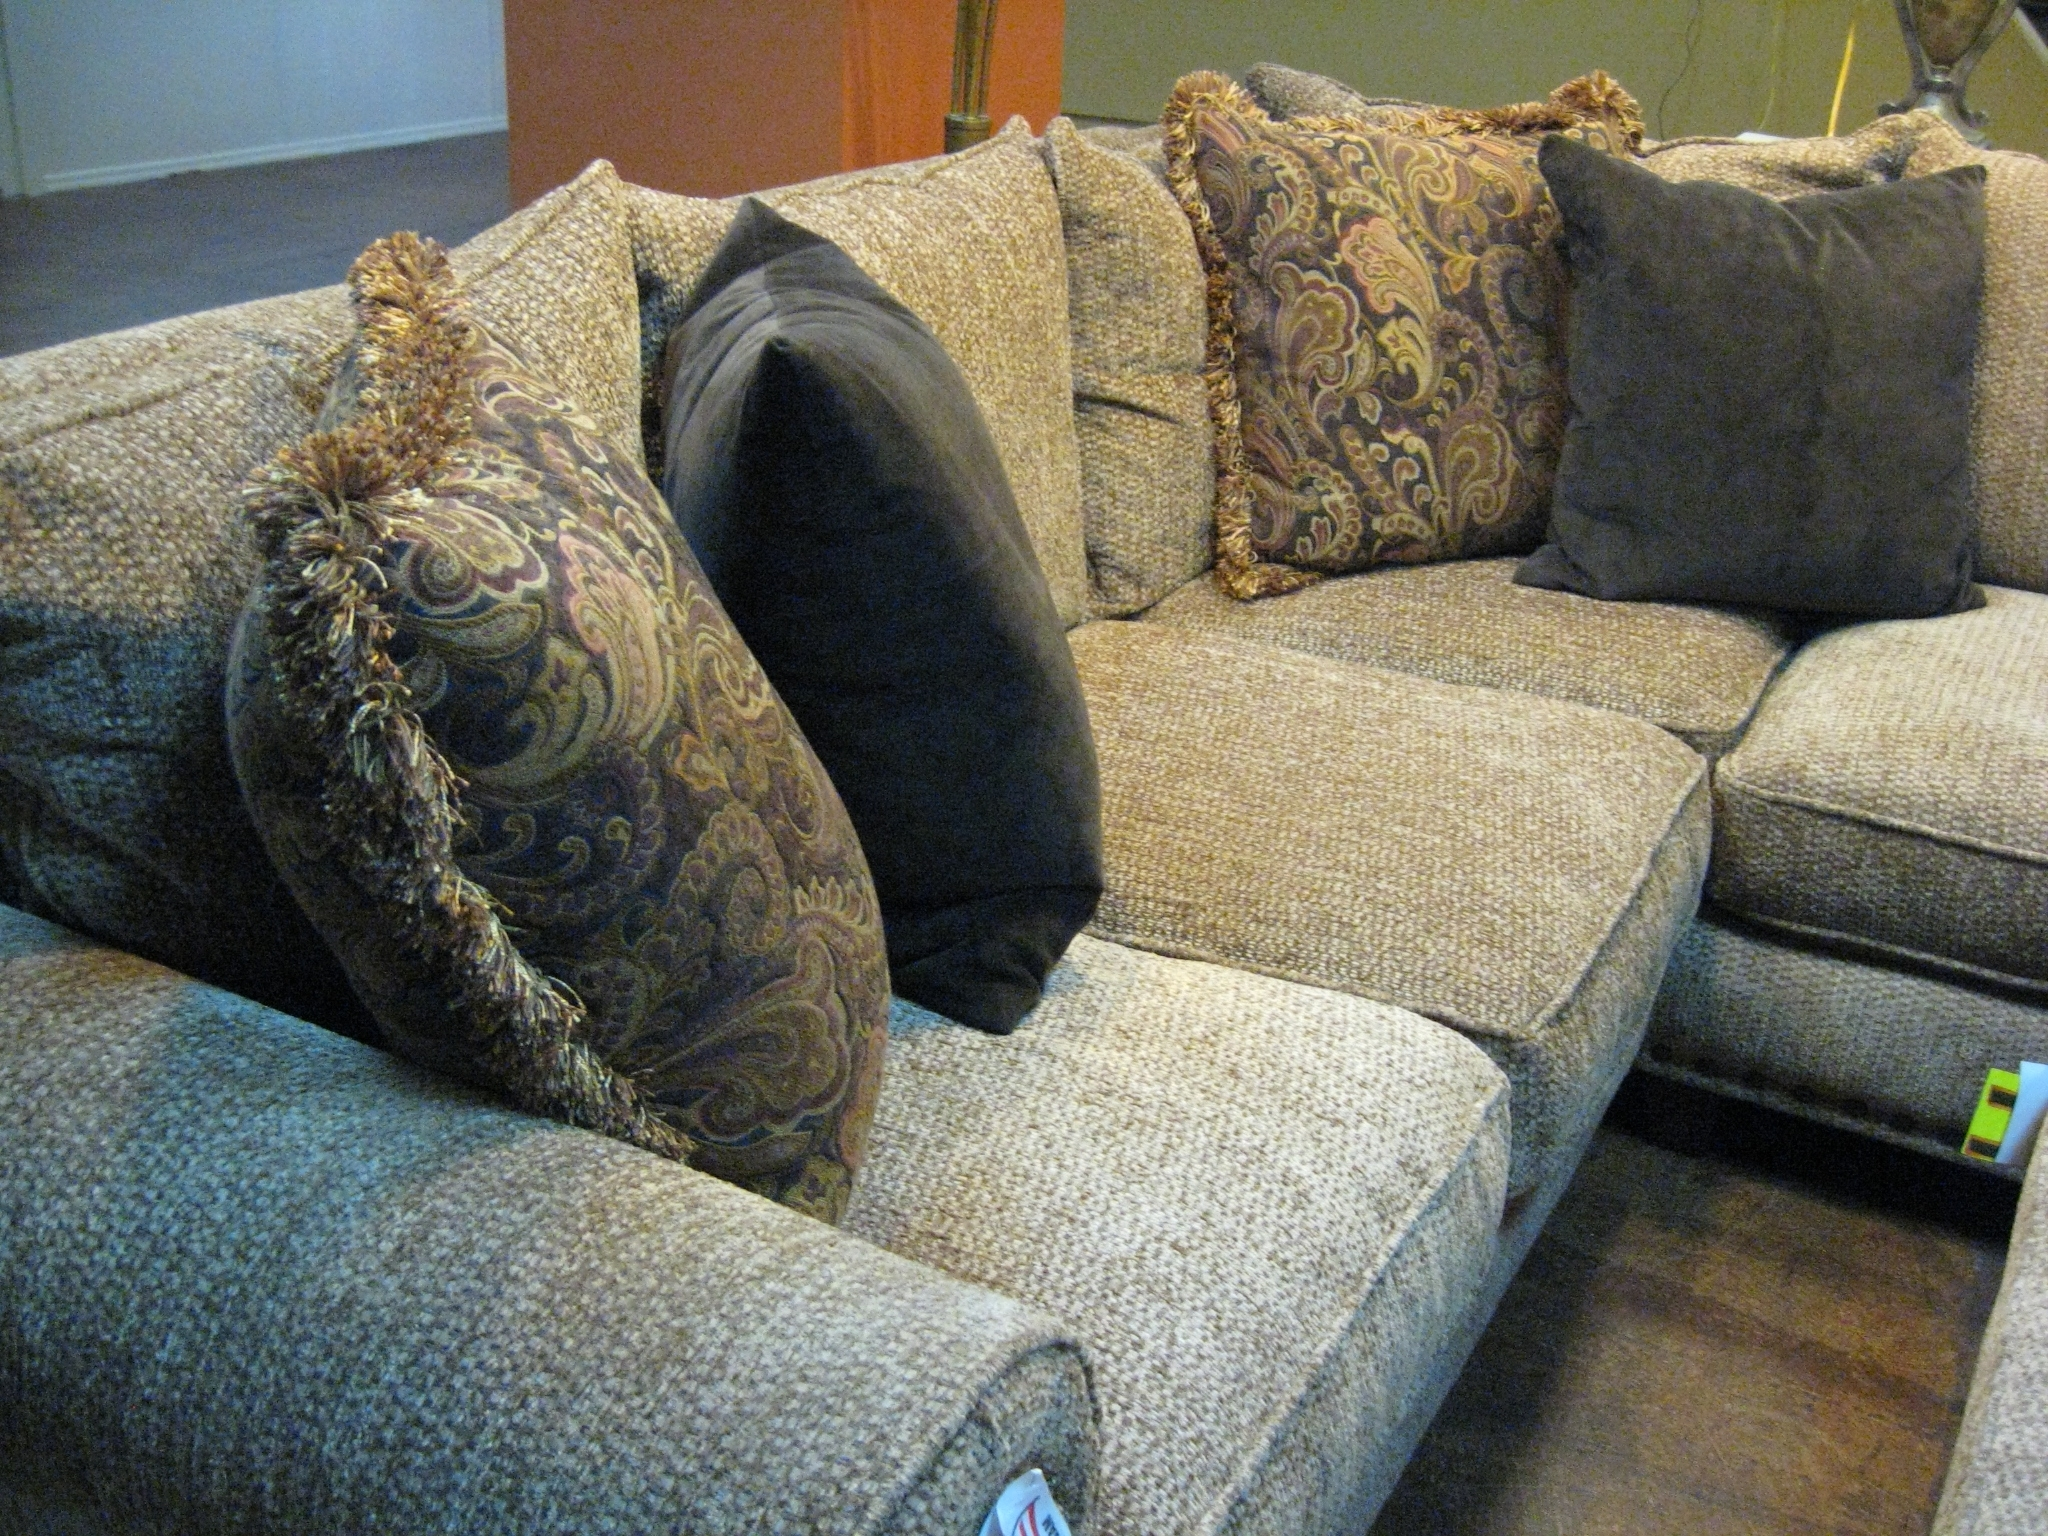 Phoenix Arizona Sectional Sofas In Most Popular Robert Michael Sectional Sofa Phoenix Arizona Discount Outlet (View 4 of 15)